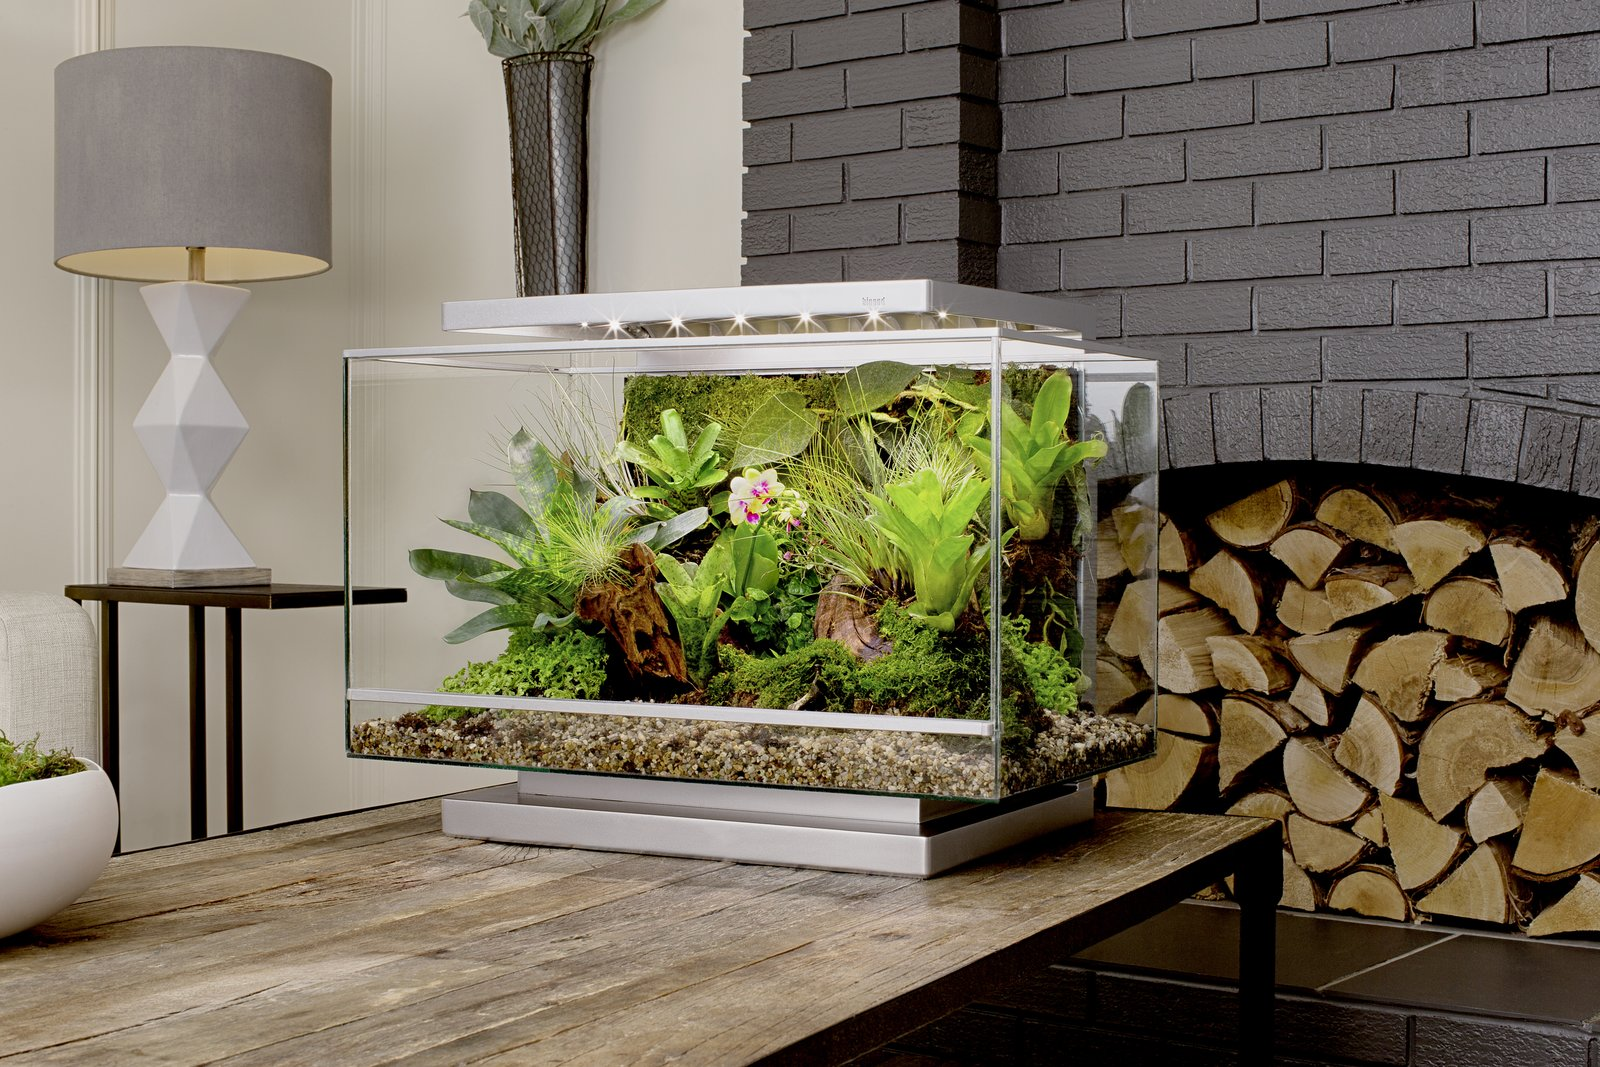 Photo 9 of 10 in Clueless About Gardening? These 5 Smart Planters Can Help